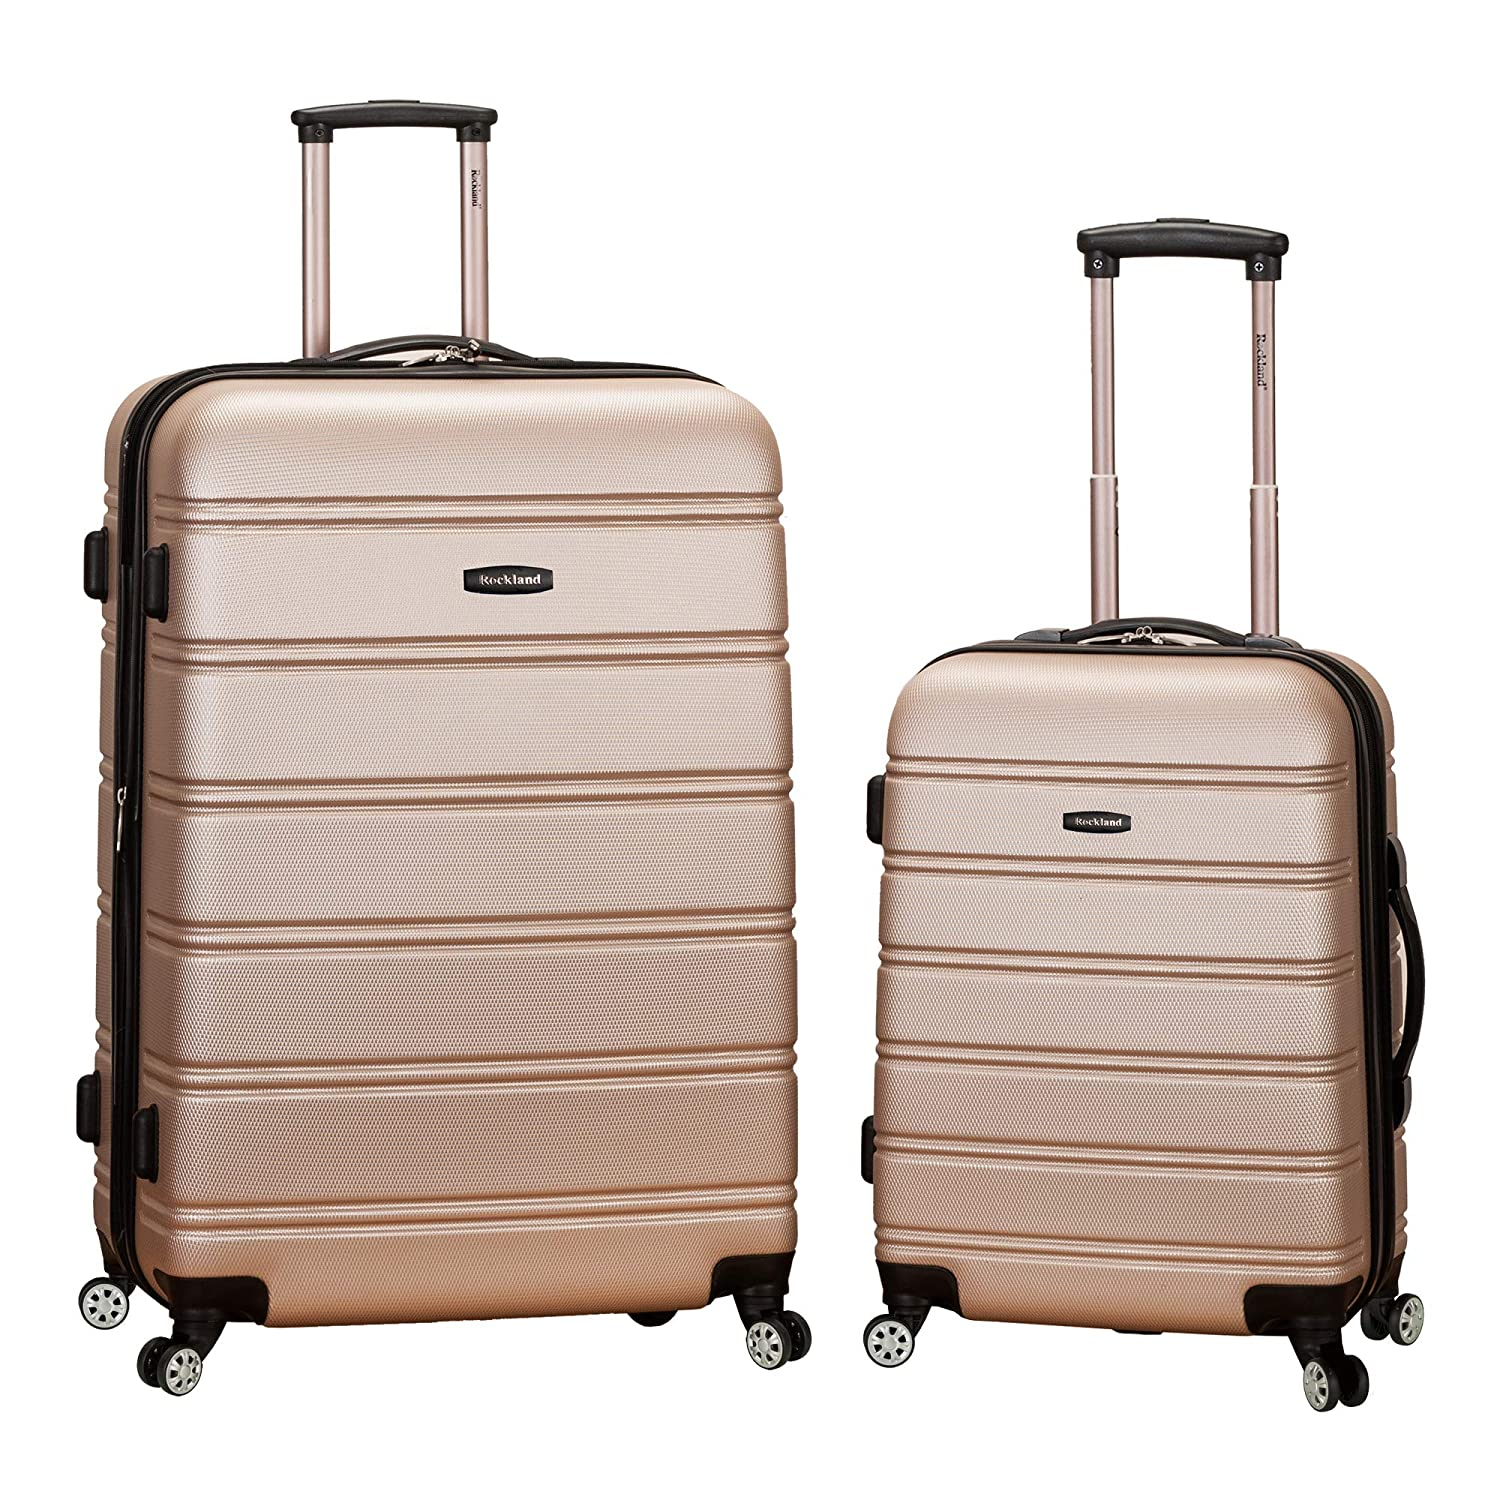 Rockland Luggage Set ONLY $94.